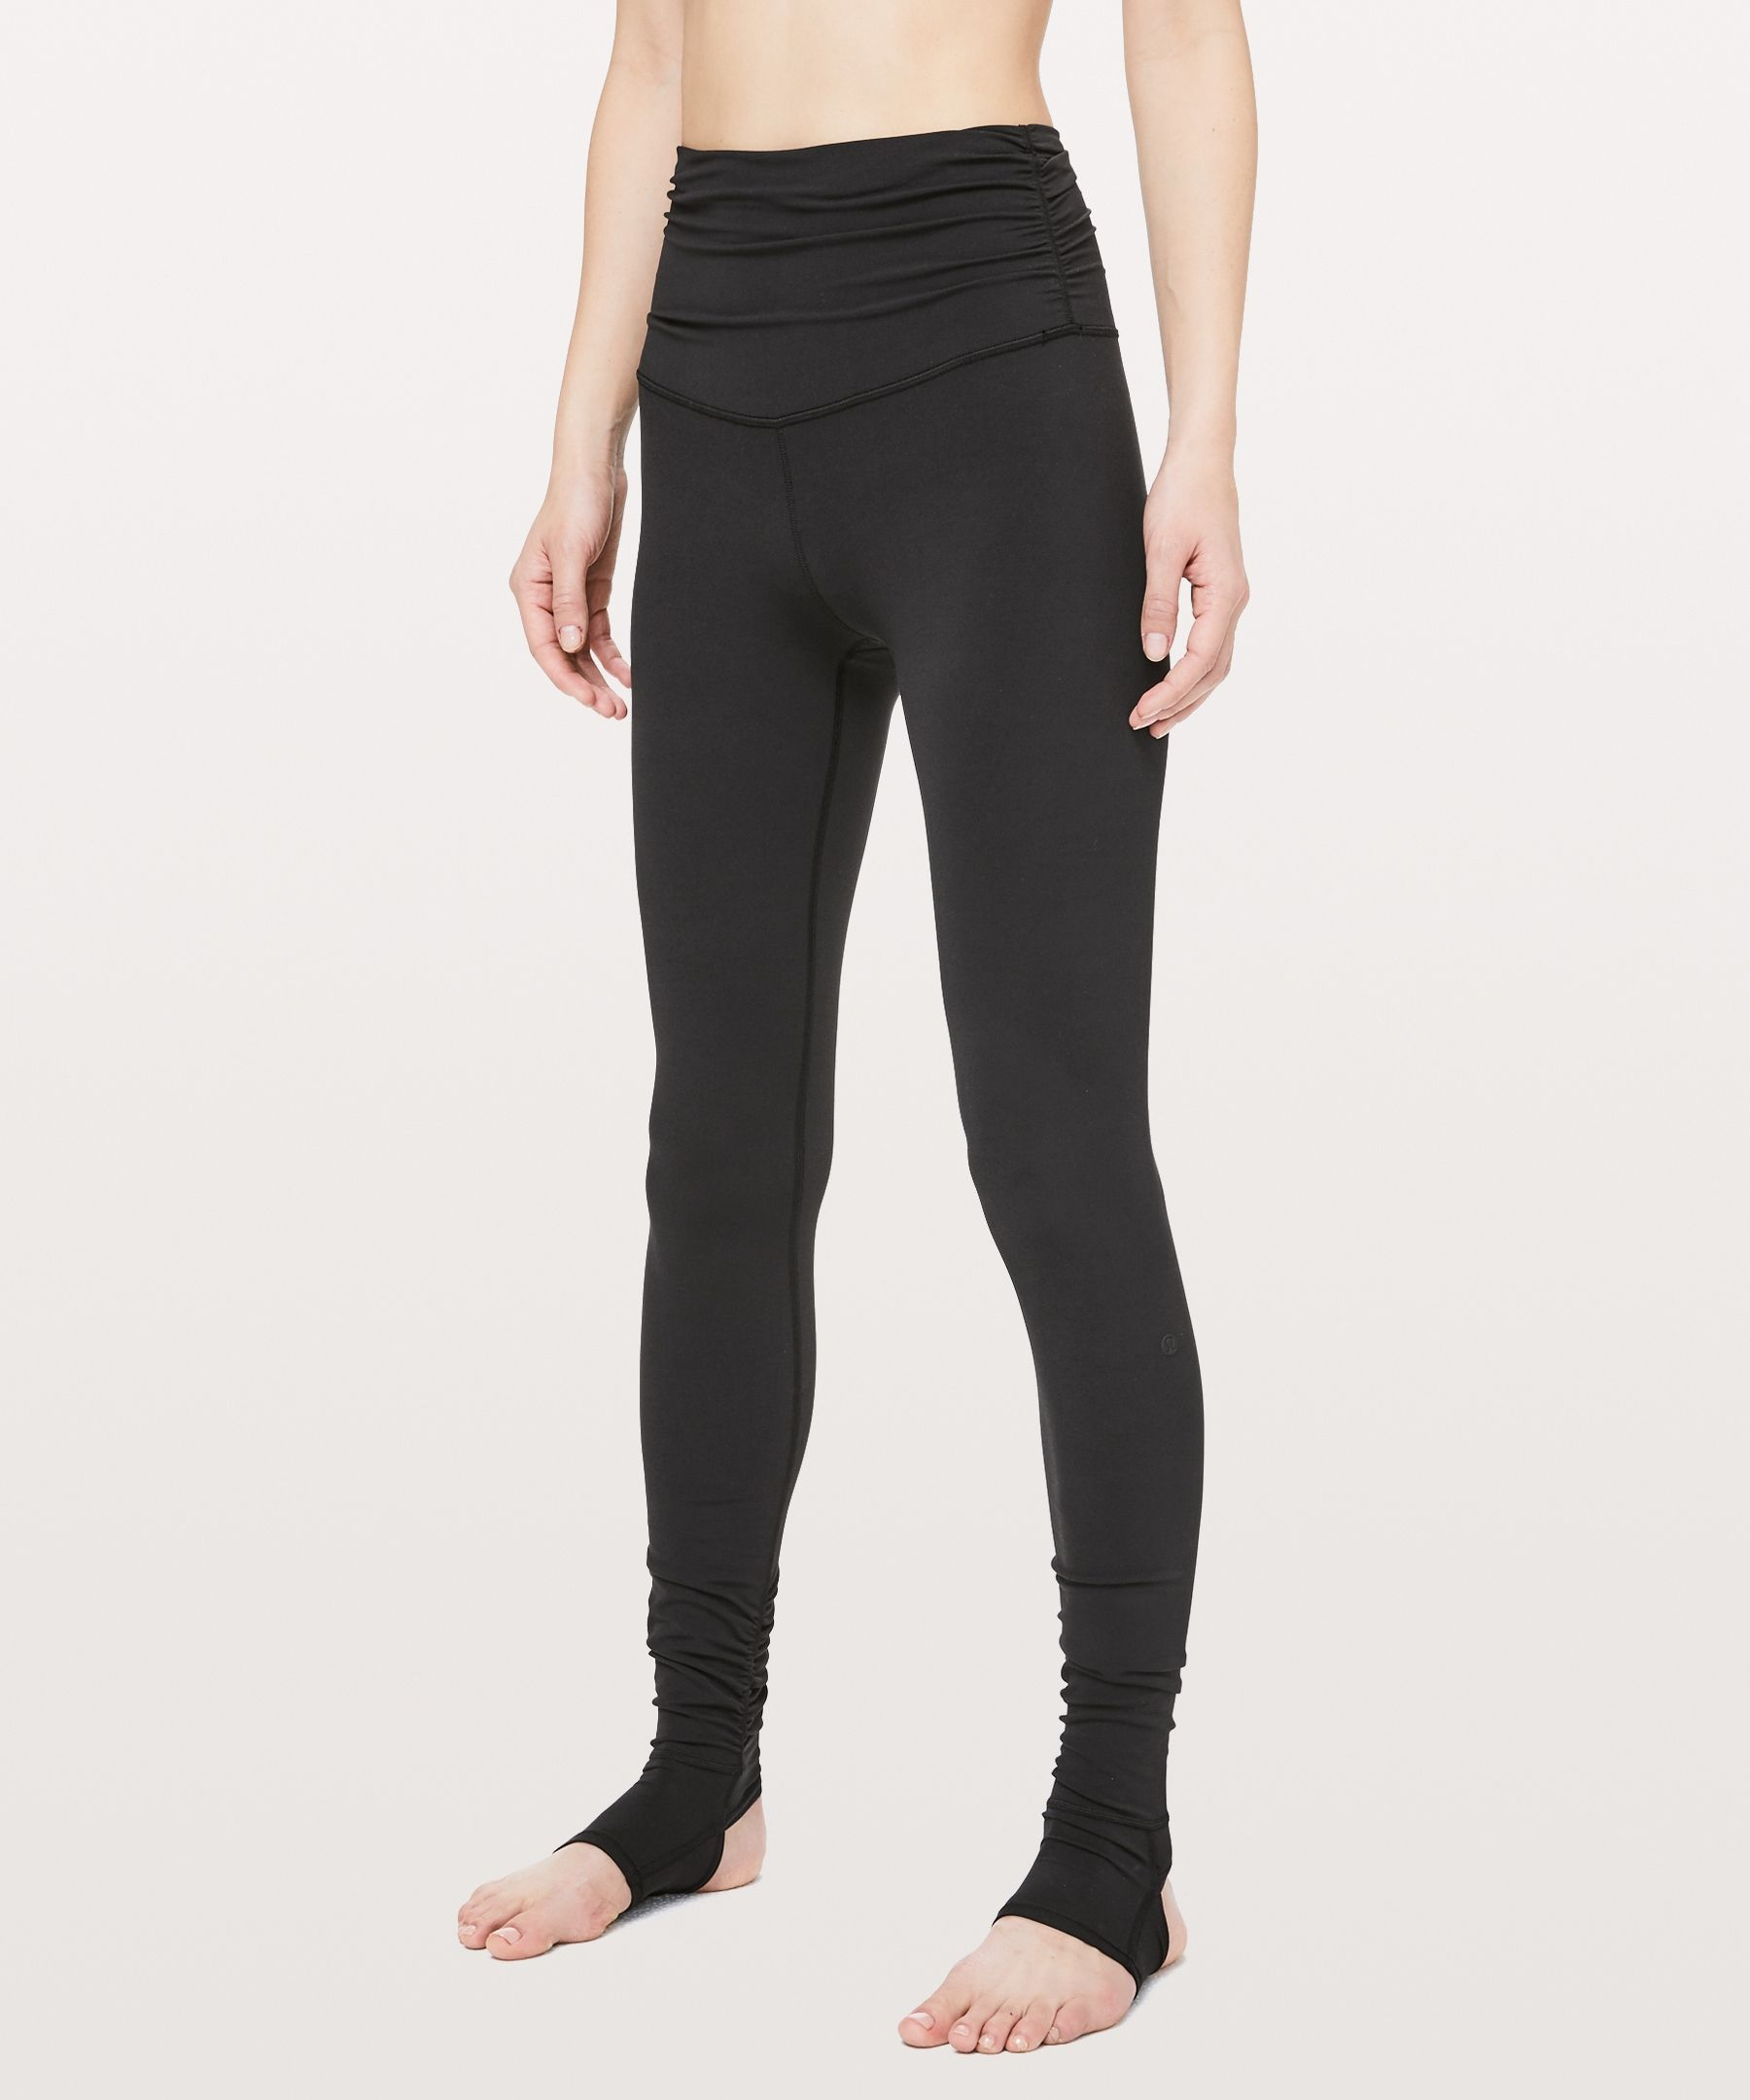 27fcfbc50bd5c8 lululemon Women's Still Mind Legging 28